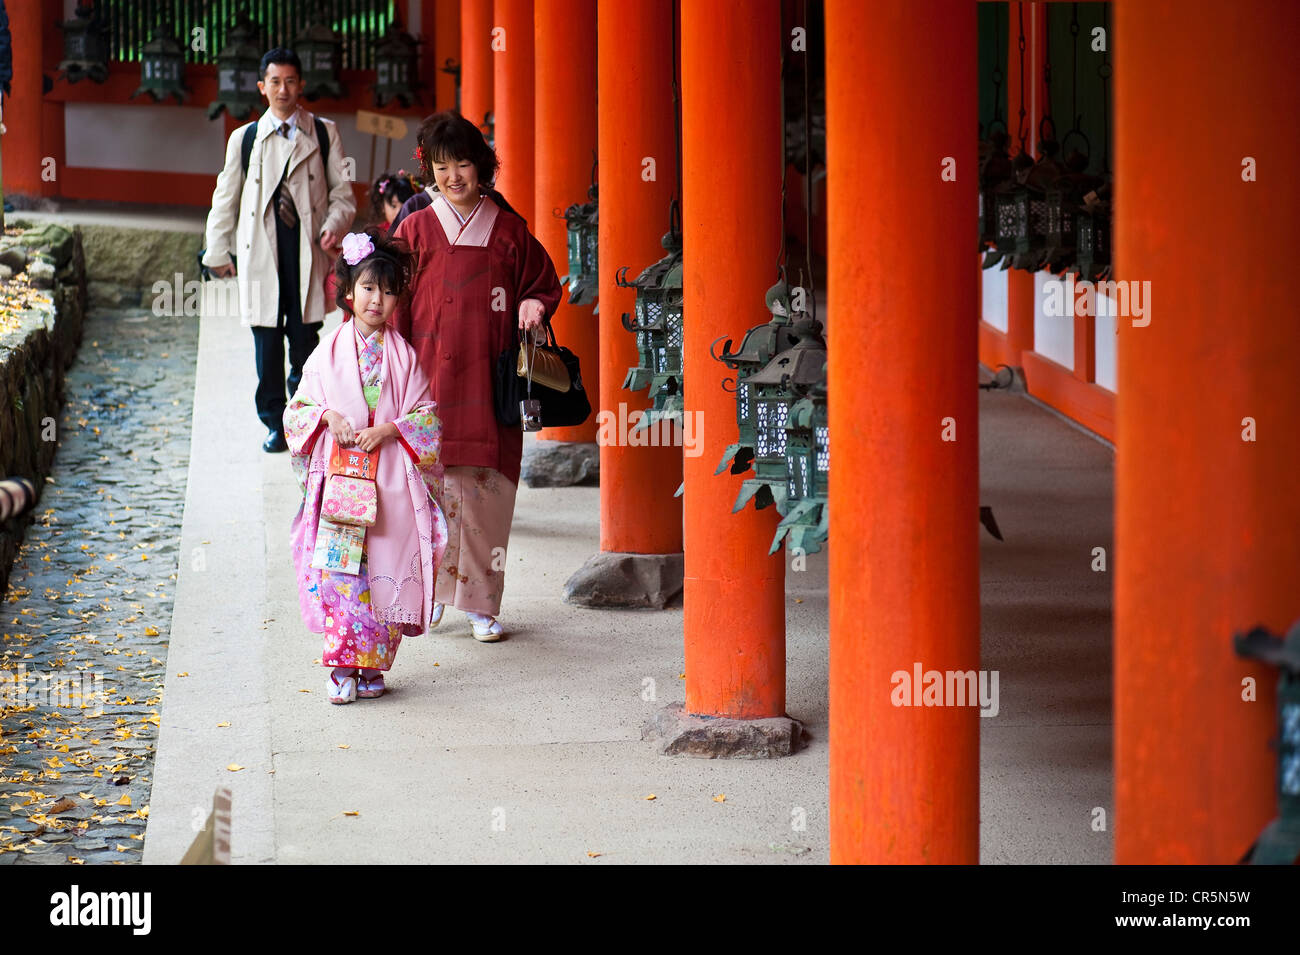 Japan Honshu Island Kinki Region city of Nara Historic Monuments of Ancient Nara listed as World Heritage by UNESCO - Stock Image